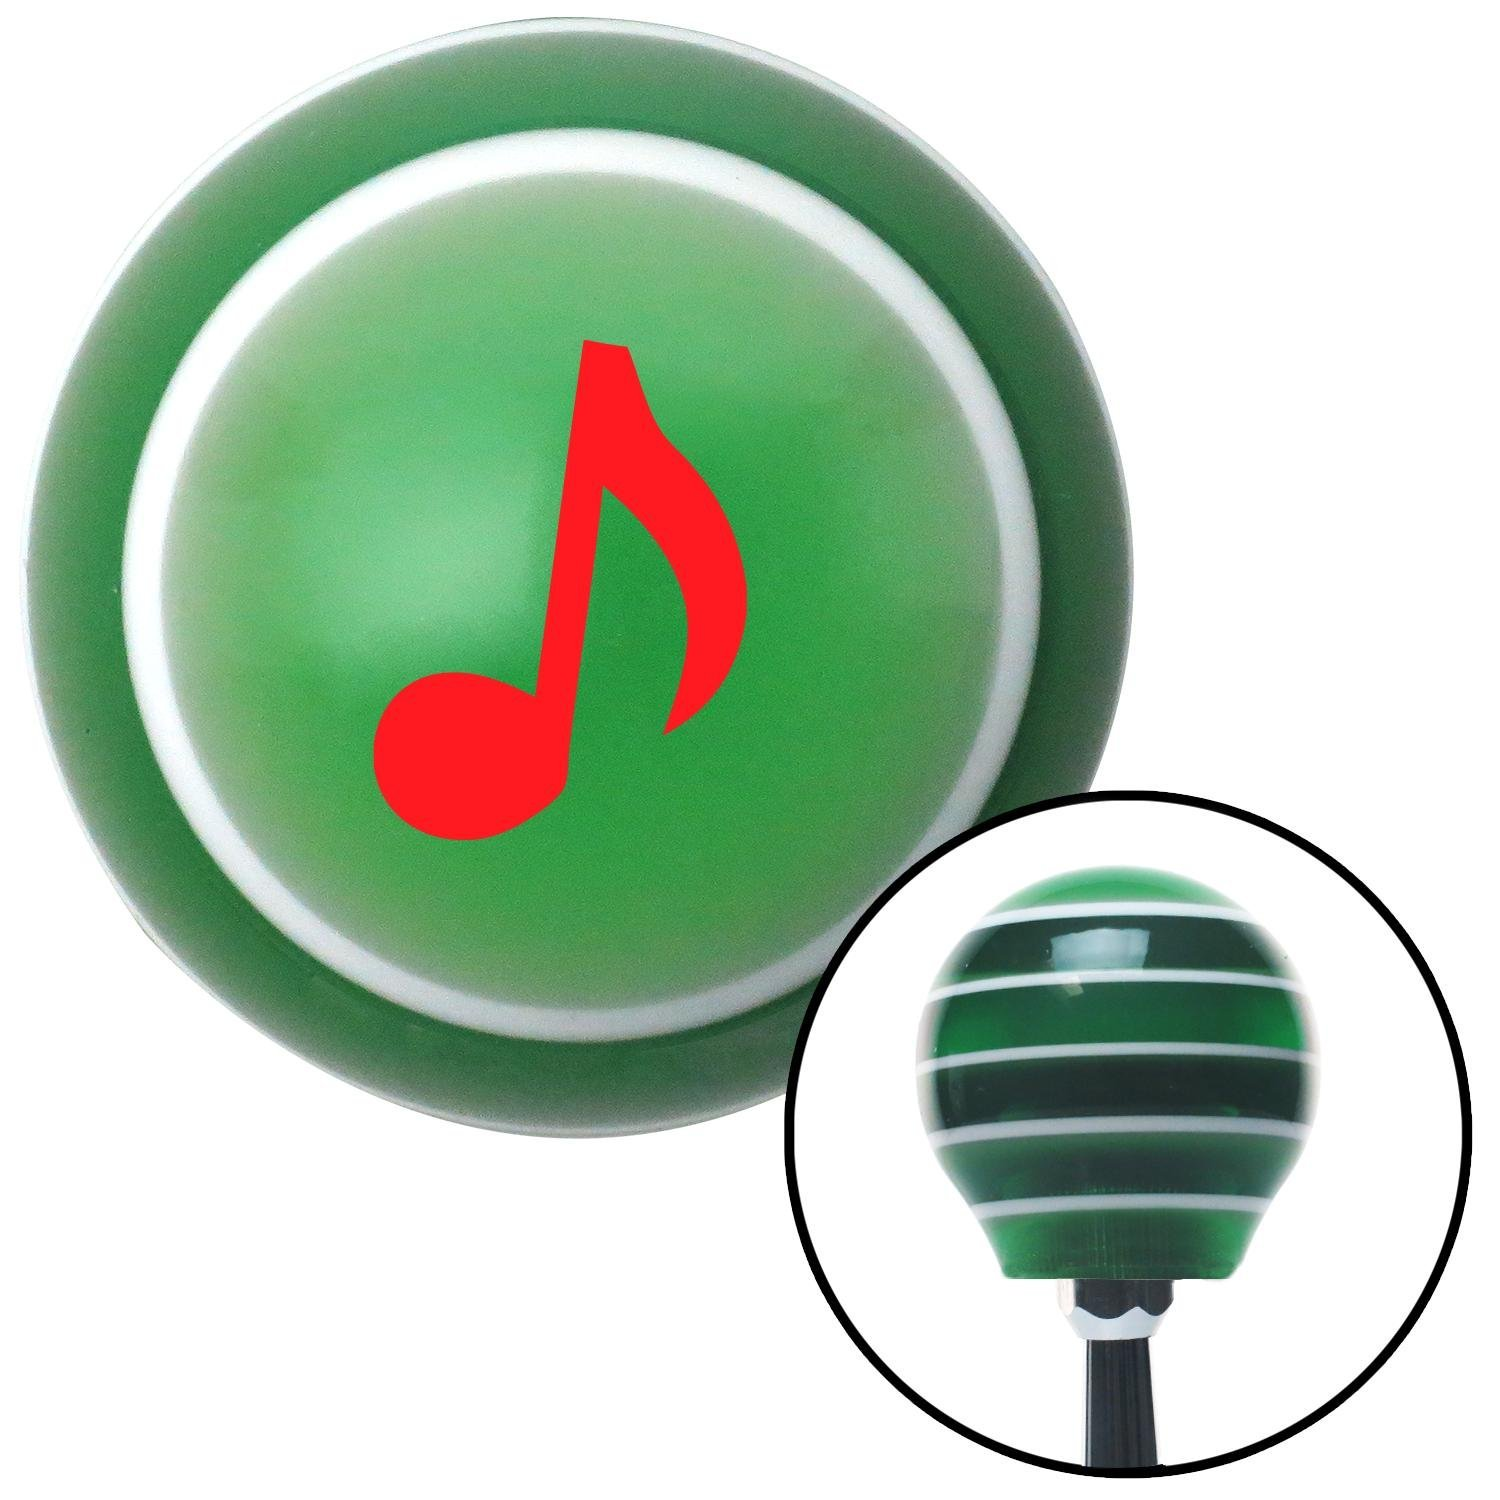 Red Music Note American Shifter 125536 Green Stripe Shift Knob with M16 x 1.5 Insert